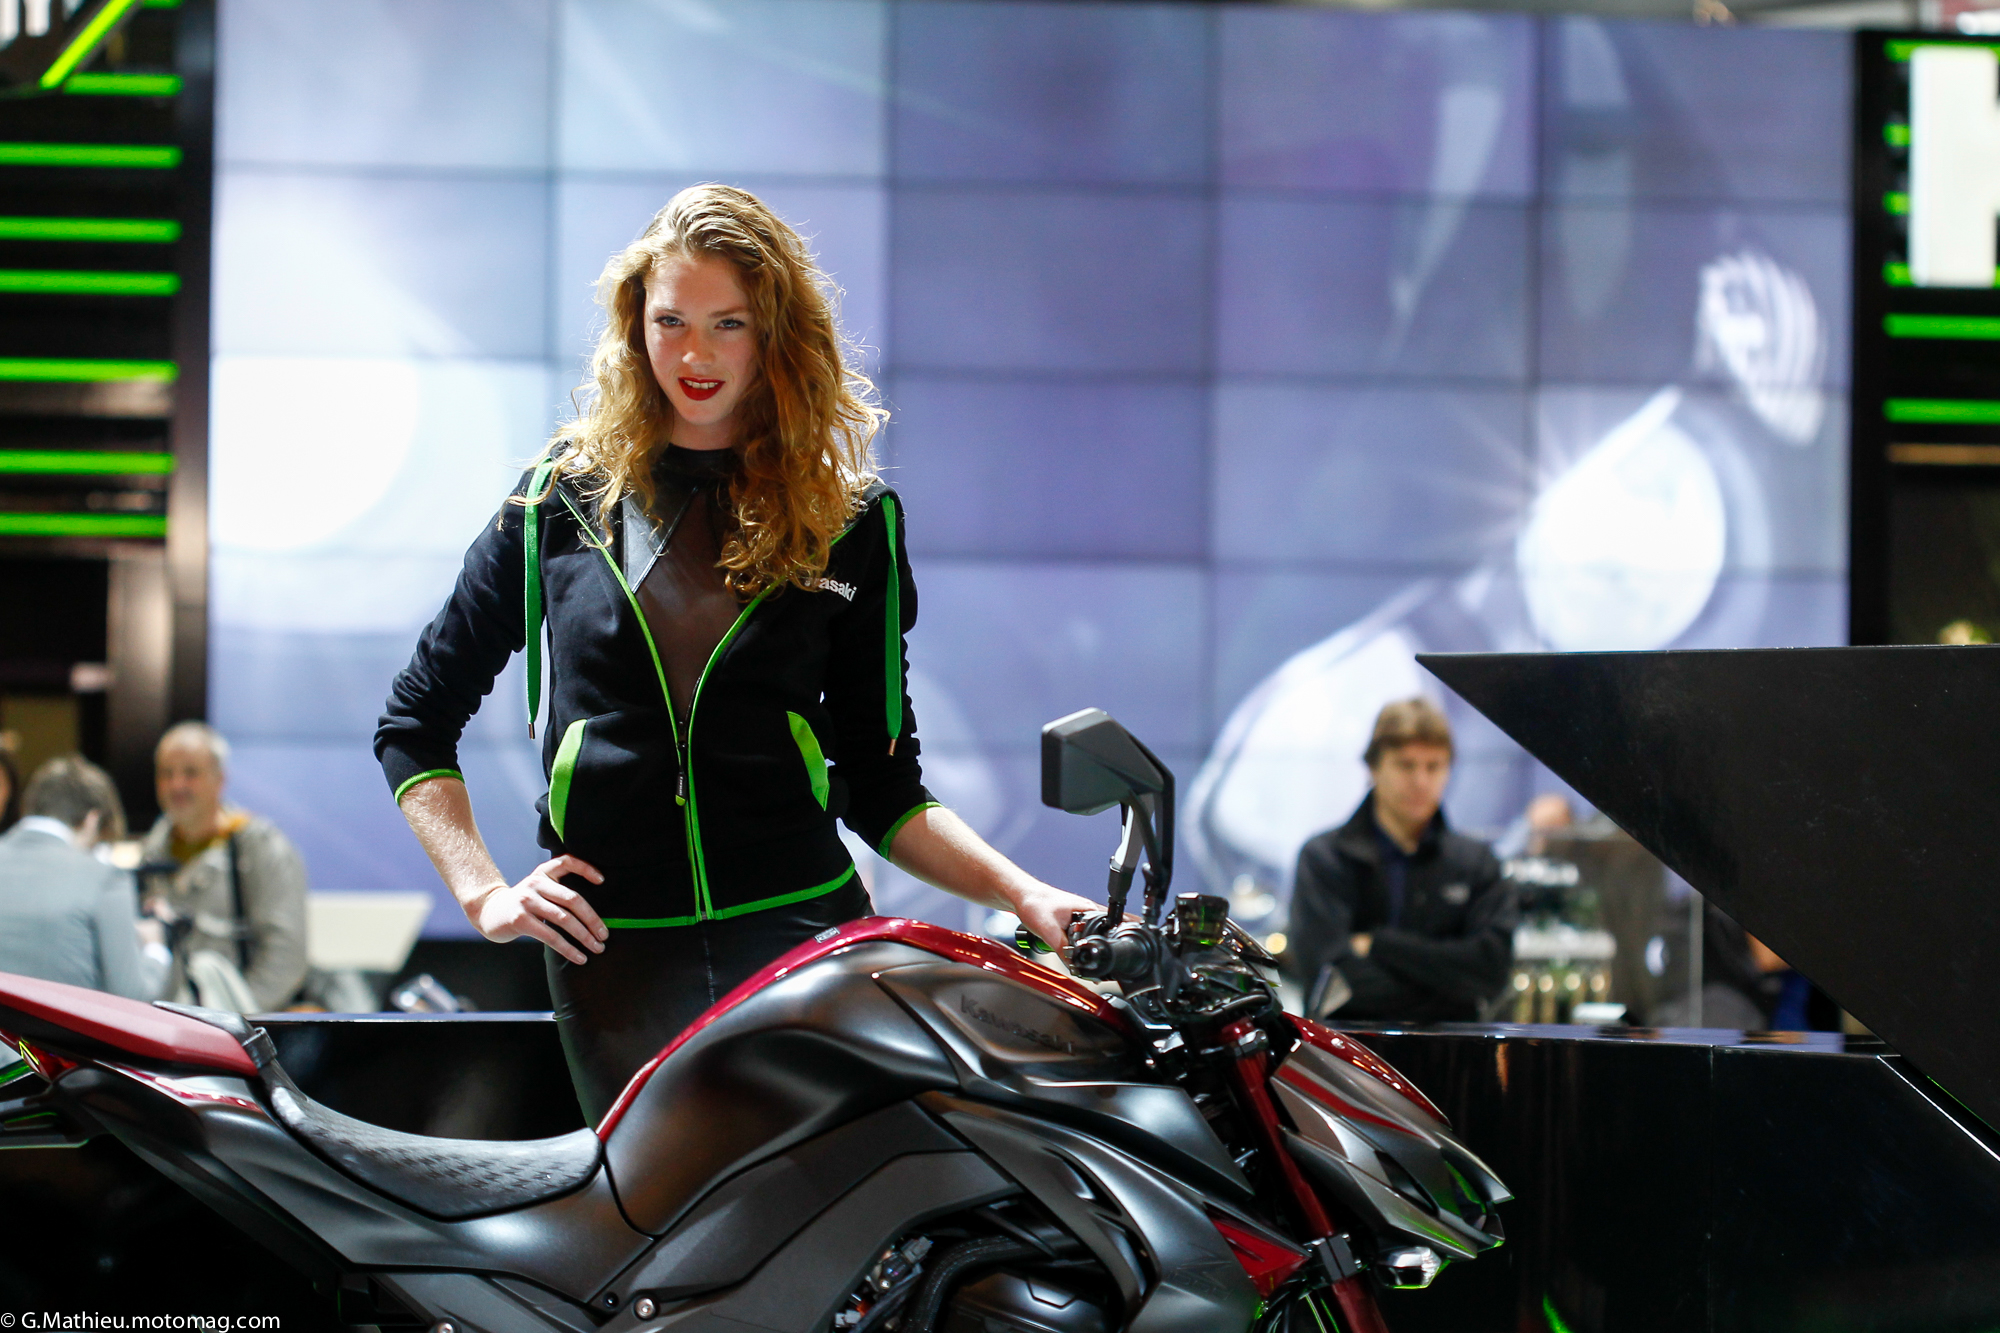 Salon de la moto de Paris : le plein d'images (...)